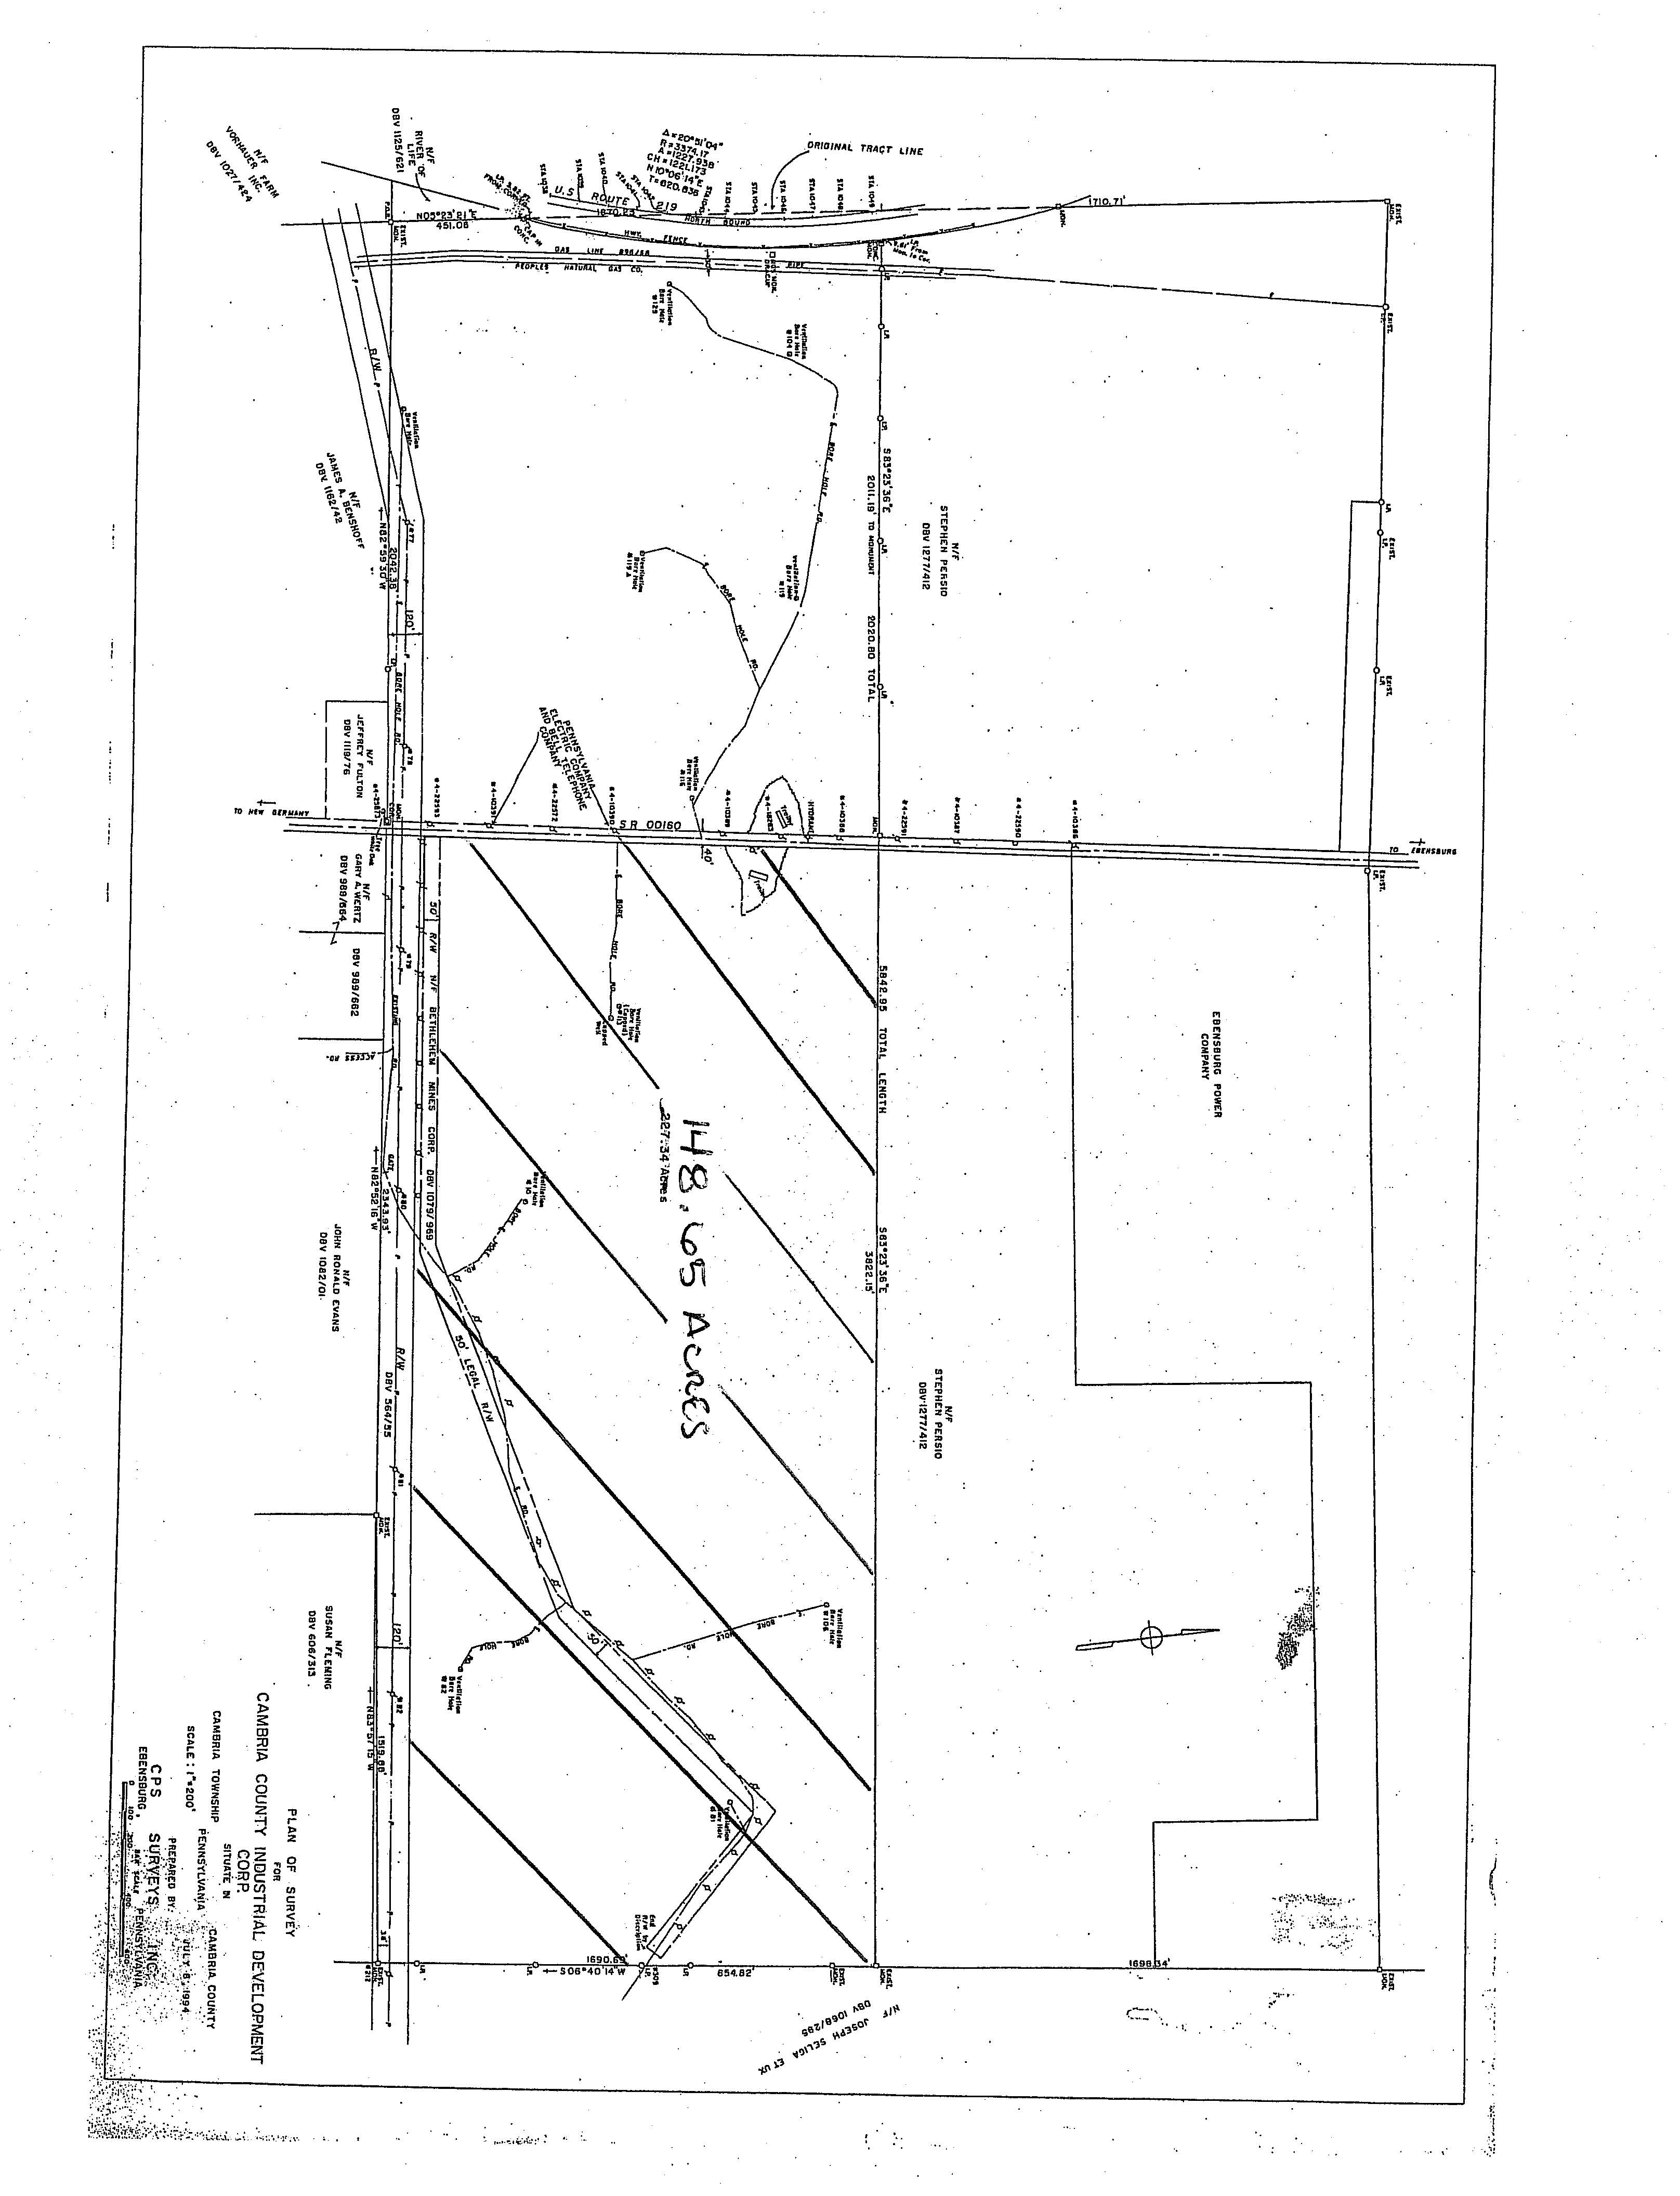 Cambria County Industrial Development Land